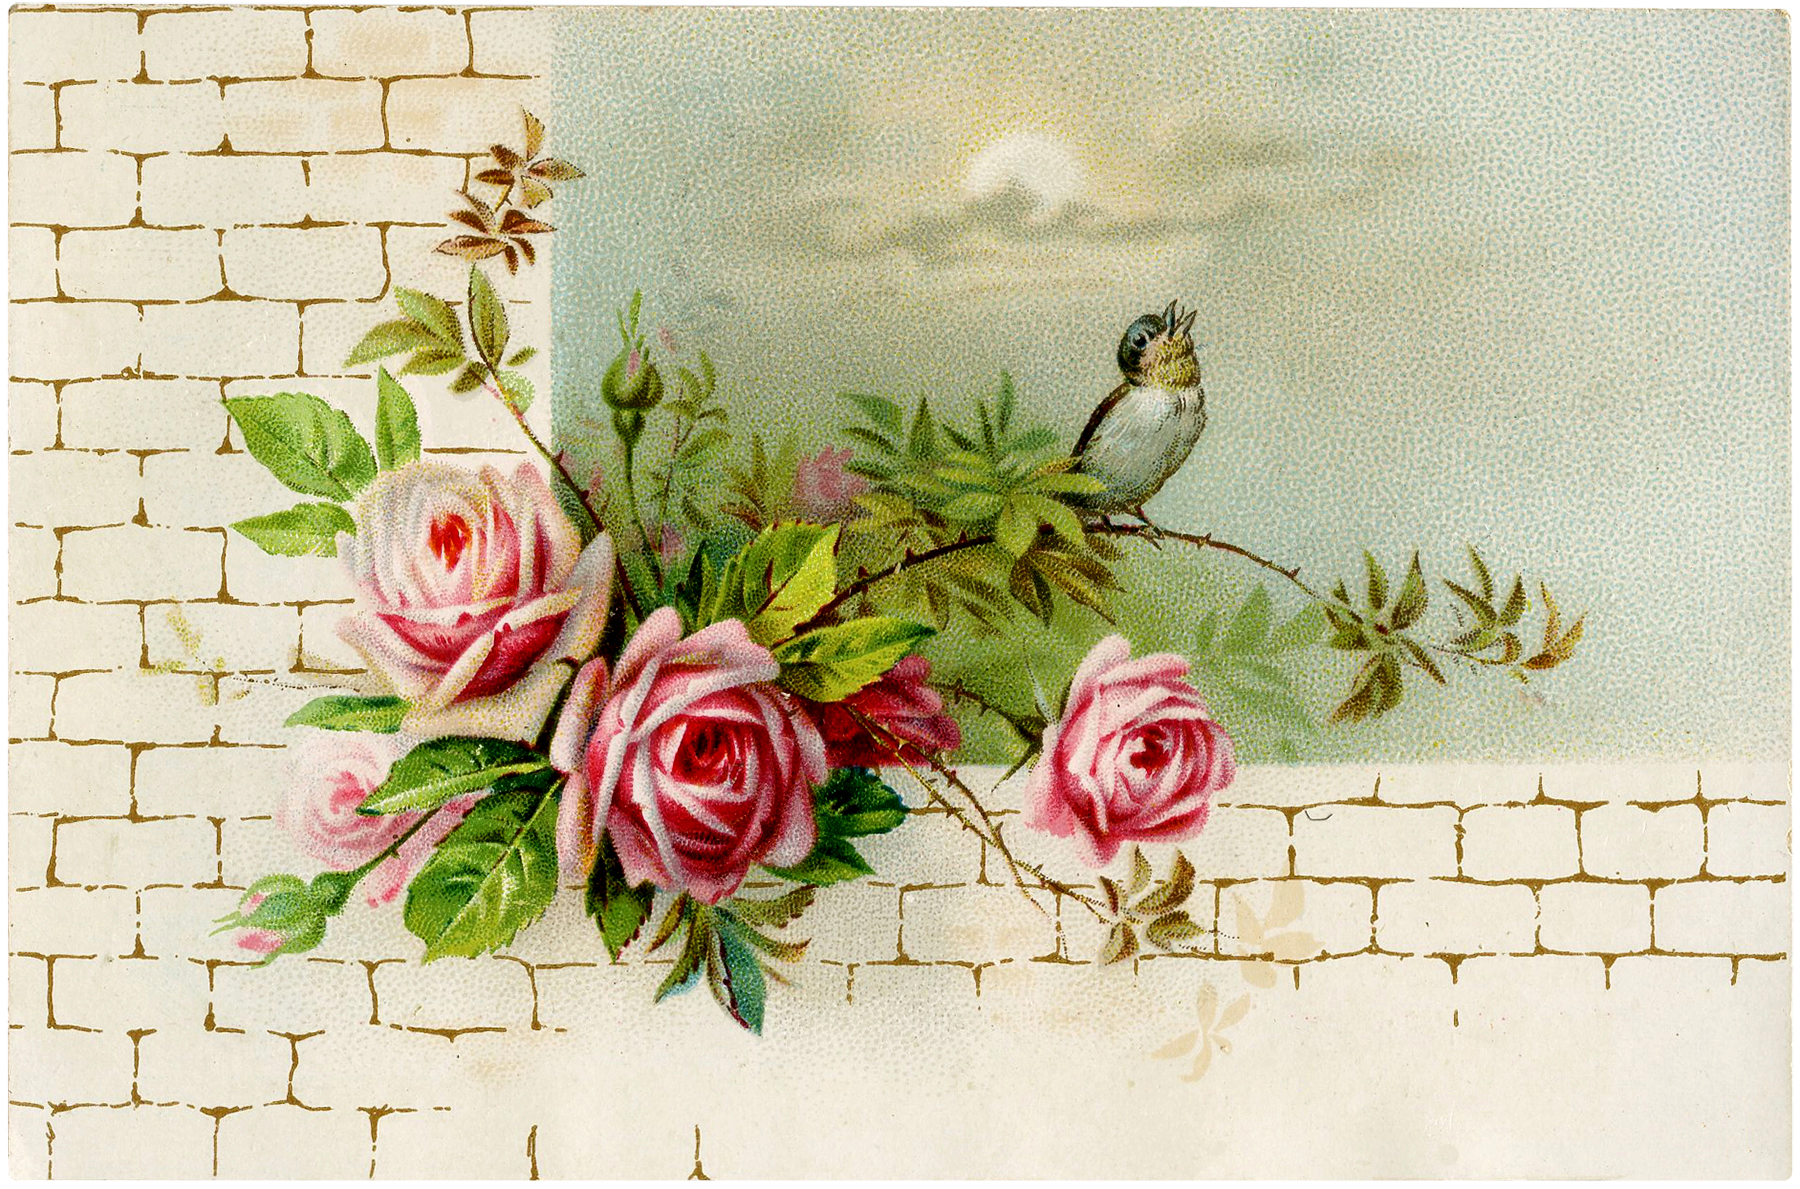 Vintage Roses on Wall Image